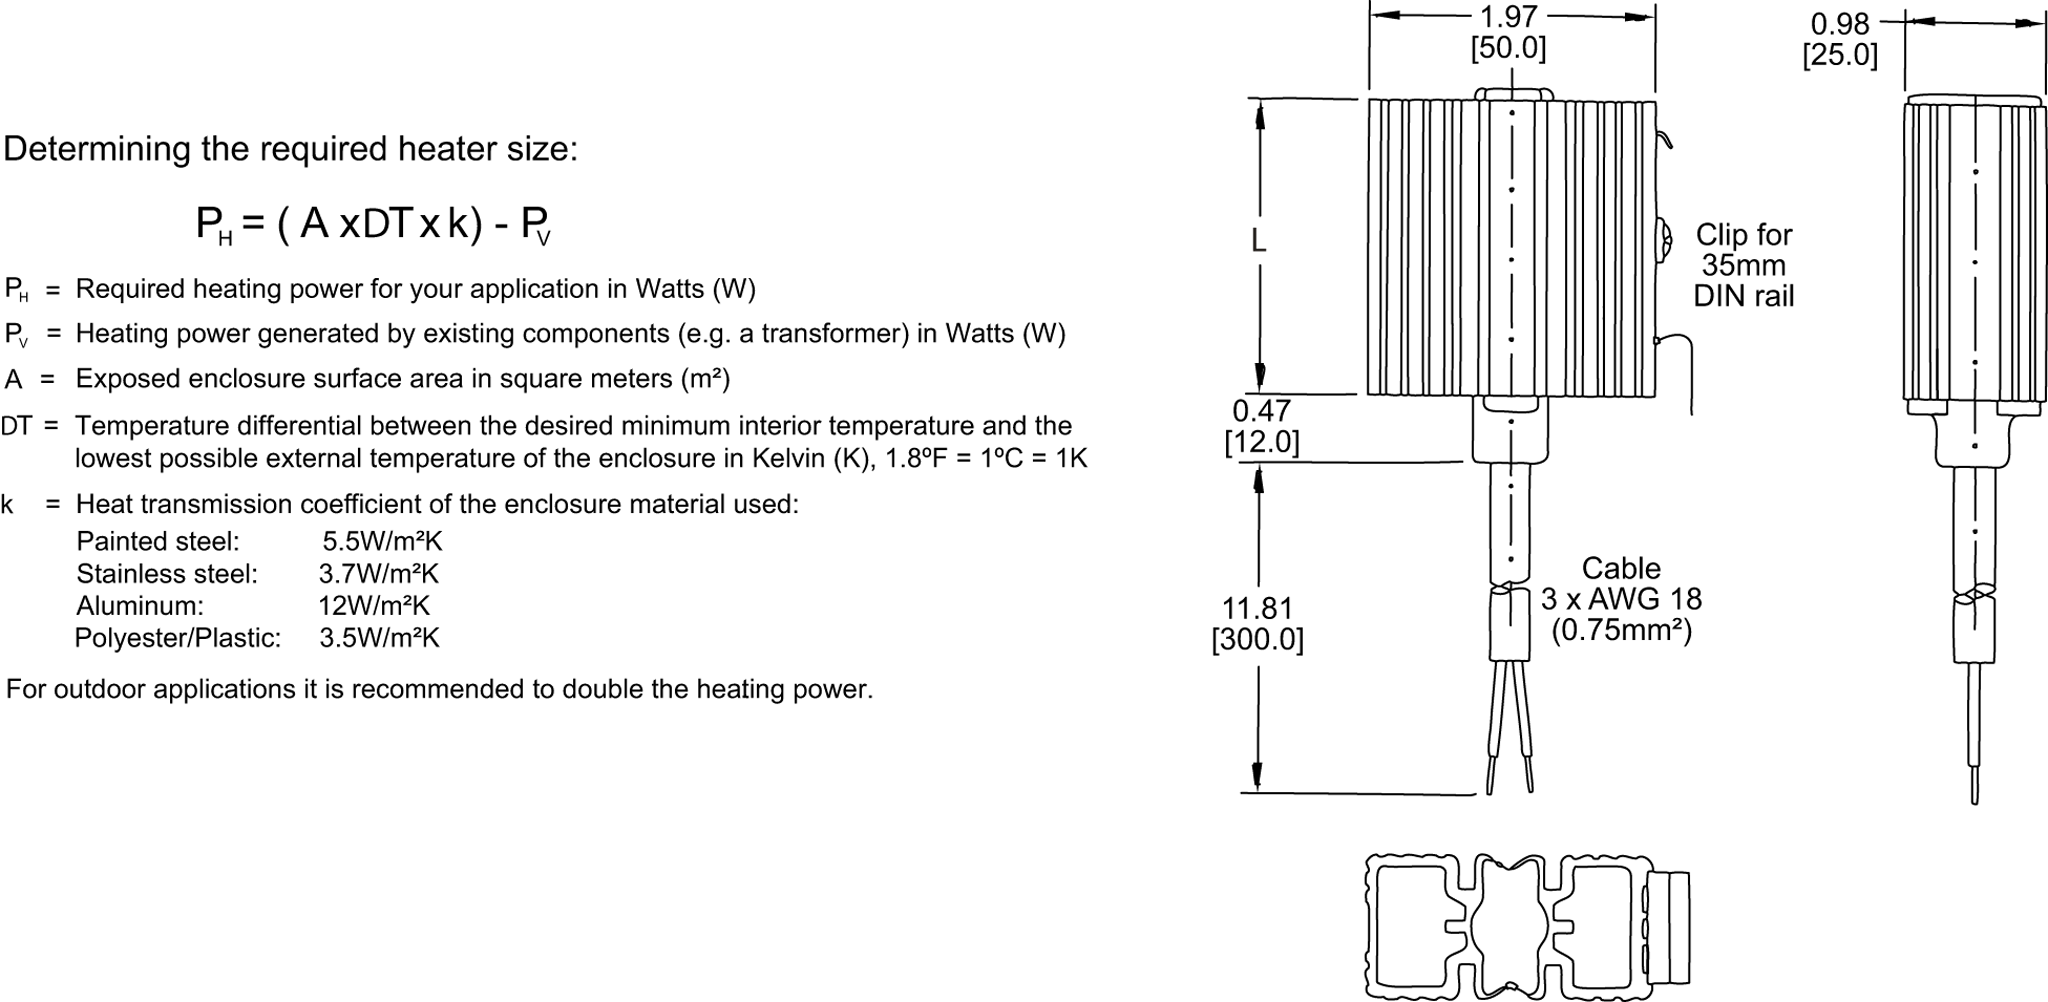 Fan Heater General Arrangement Drawing